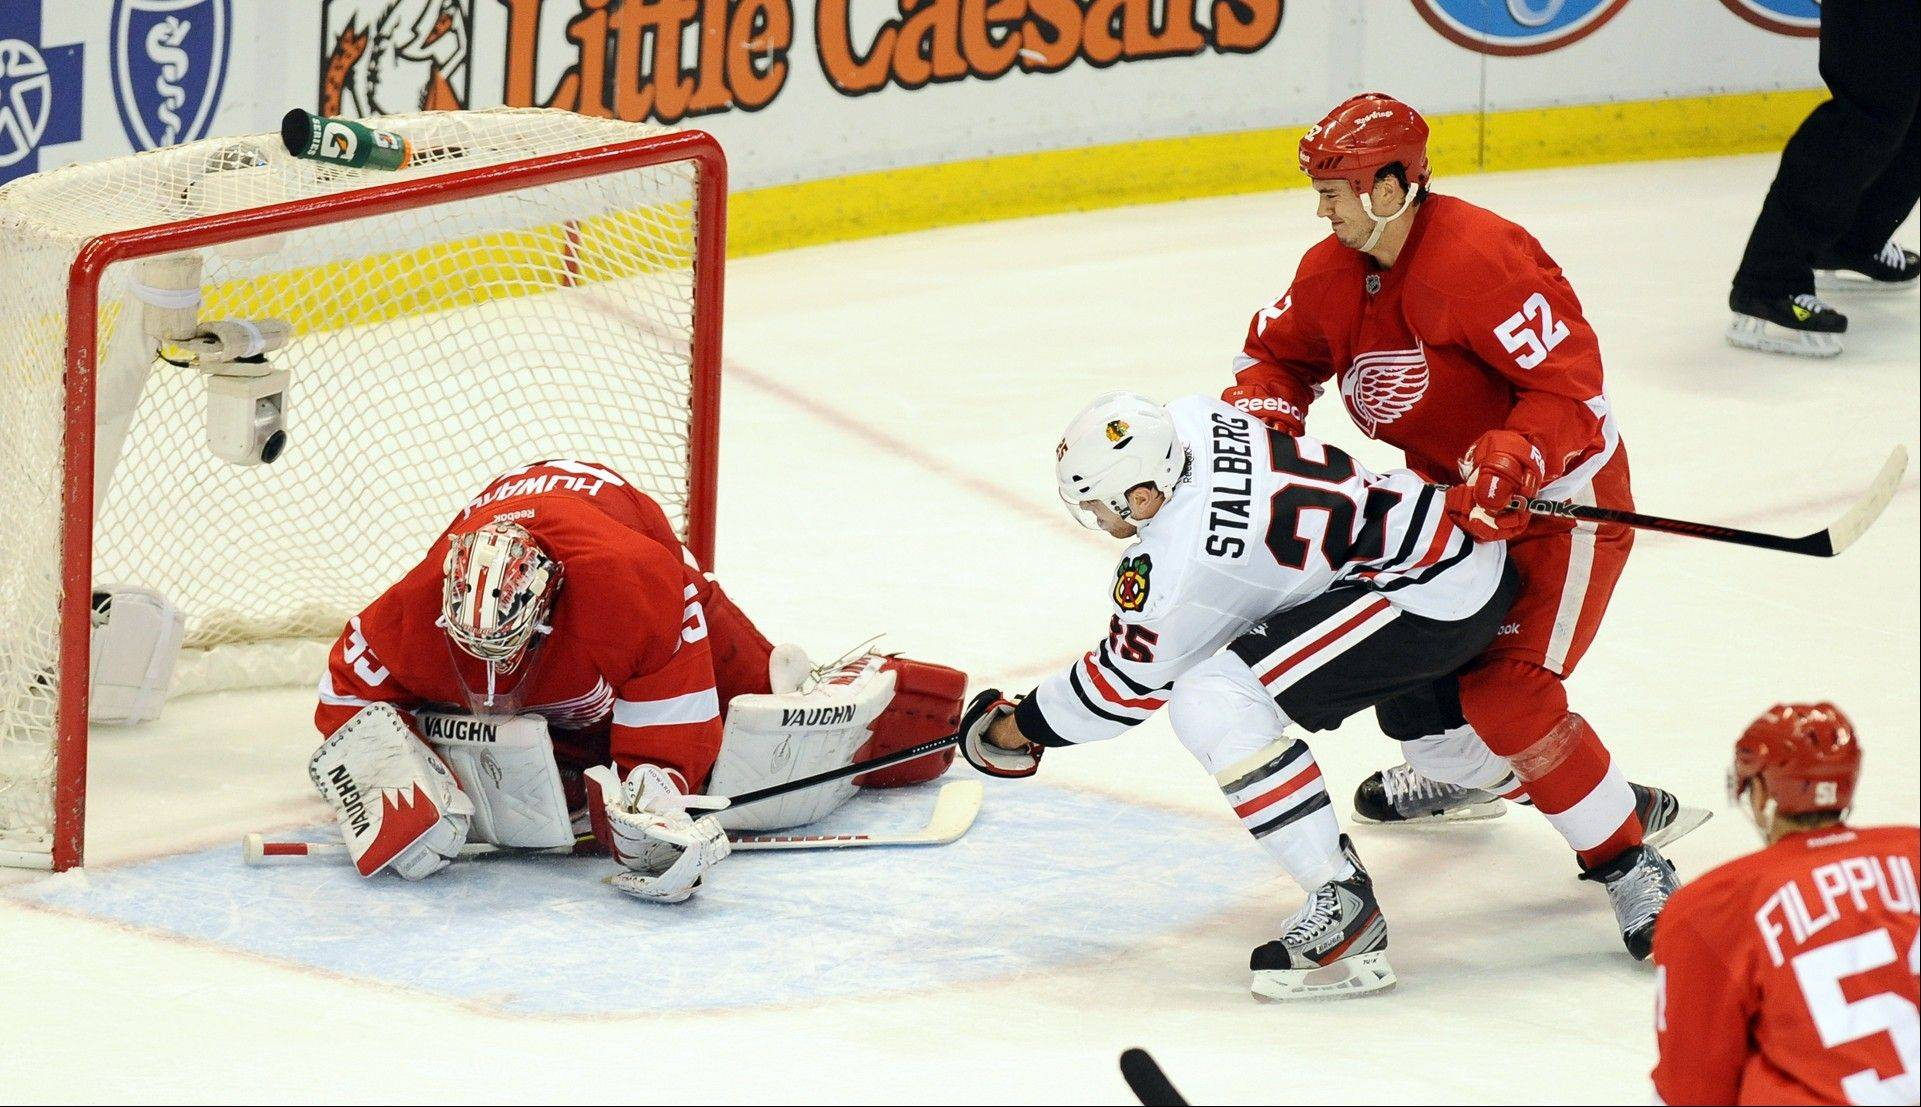 Detroit Red Wings goalie Jimmy Howard, left, snuffs a shot by the Blackhawks Viktor Stalberg Saturday during the second period. The Blackhawks won 3-2 in a shootout.